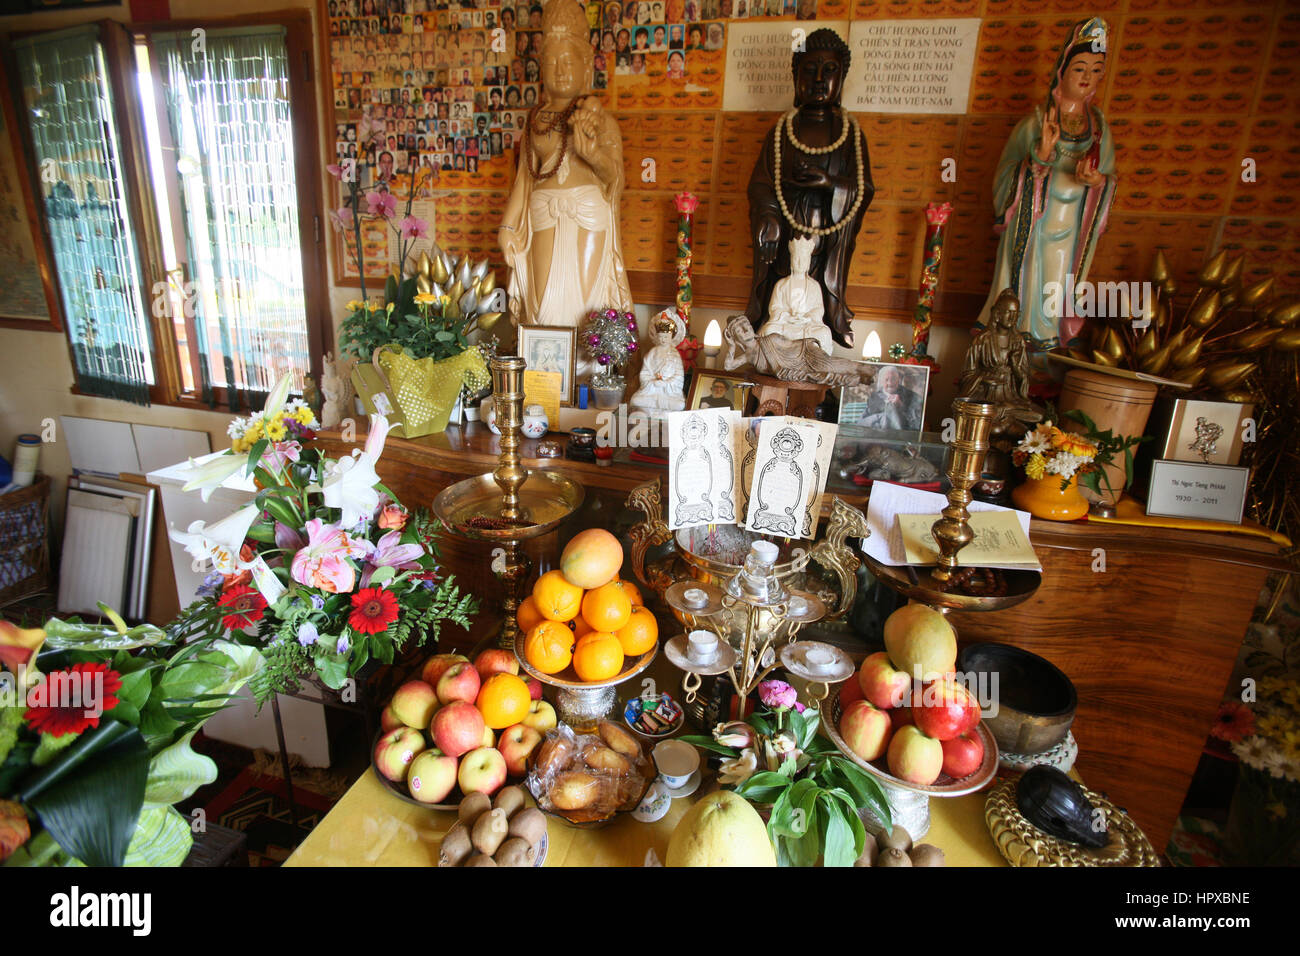 Altar of the ancestors. - Stock Image